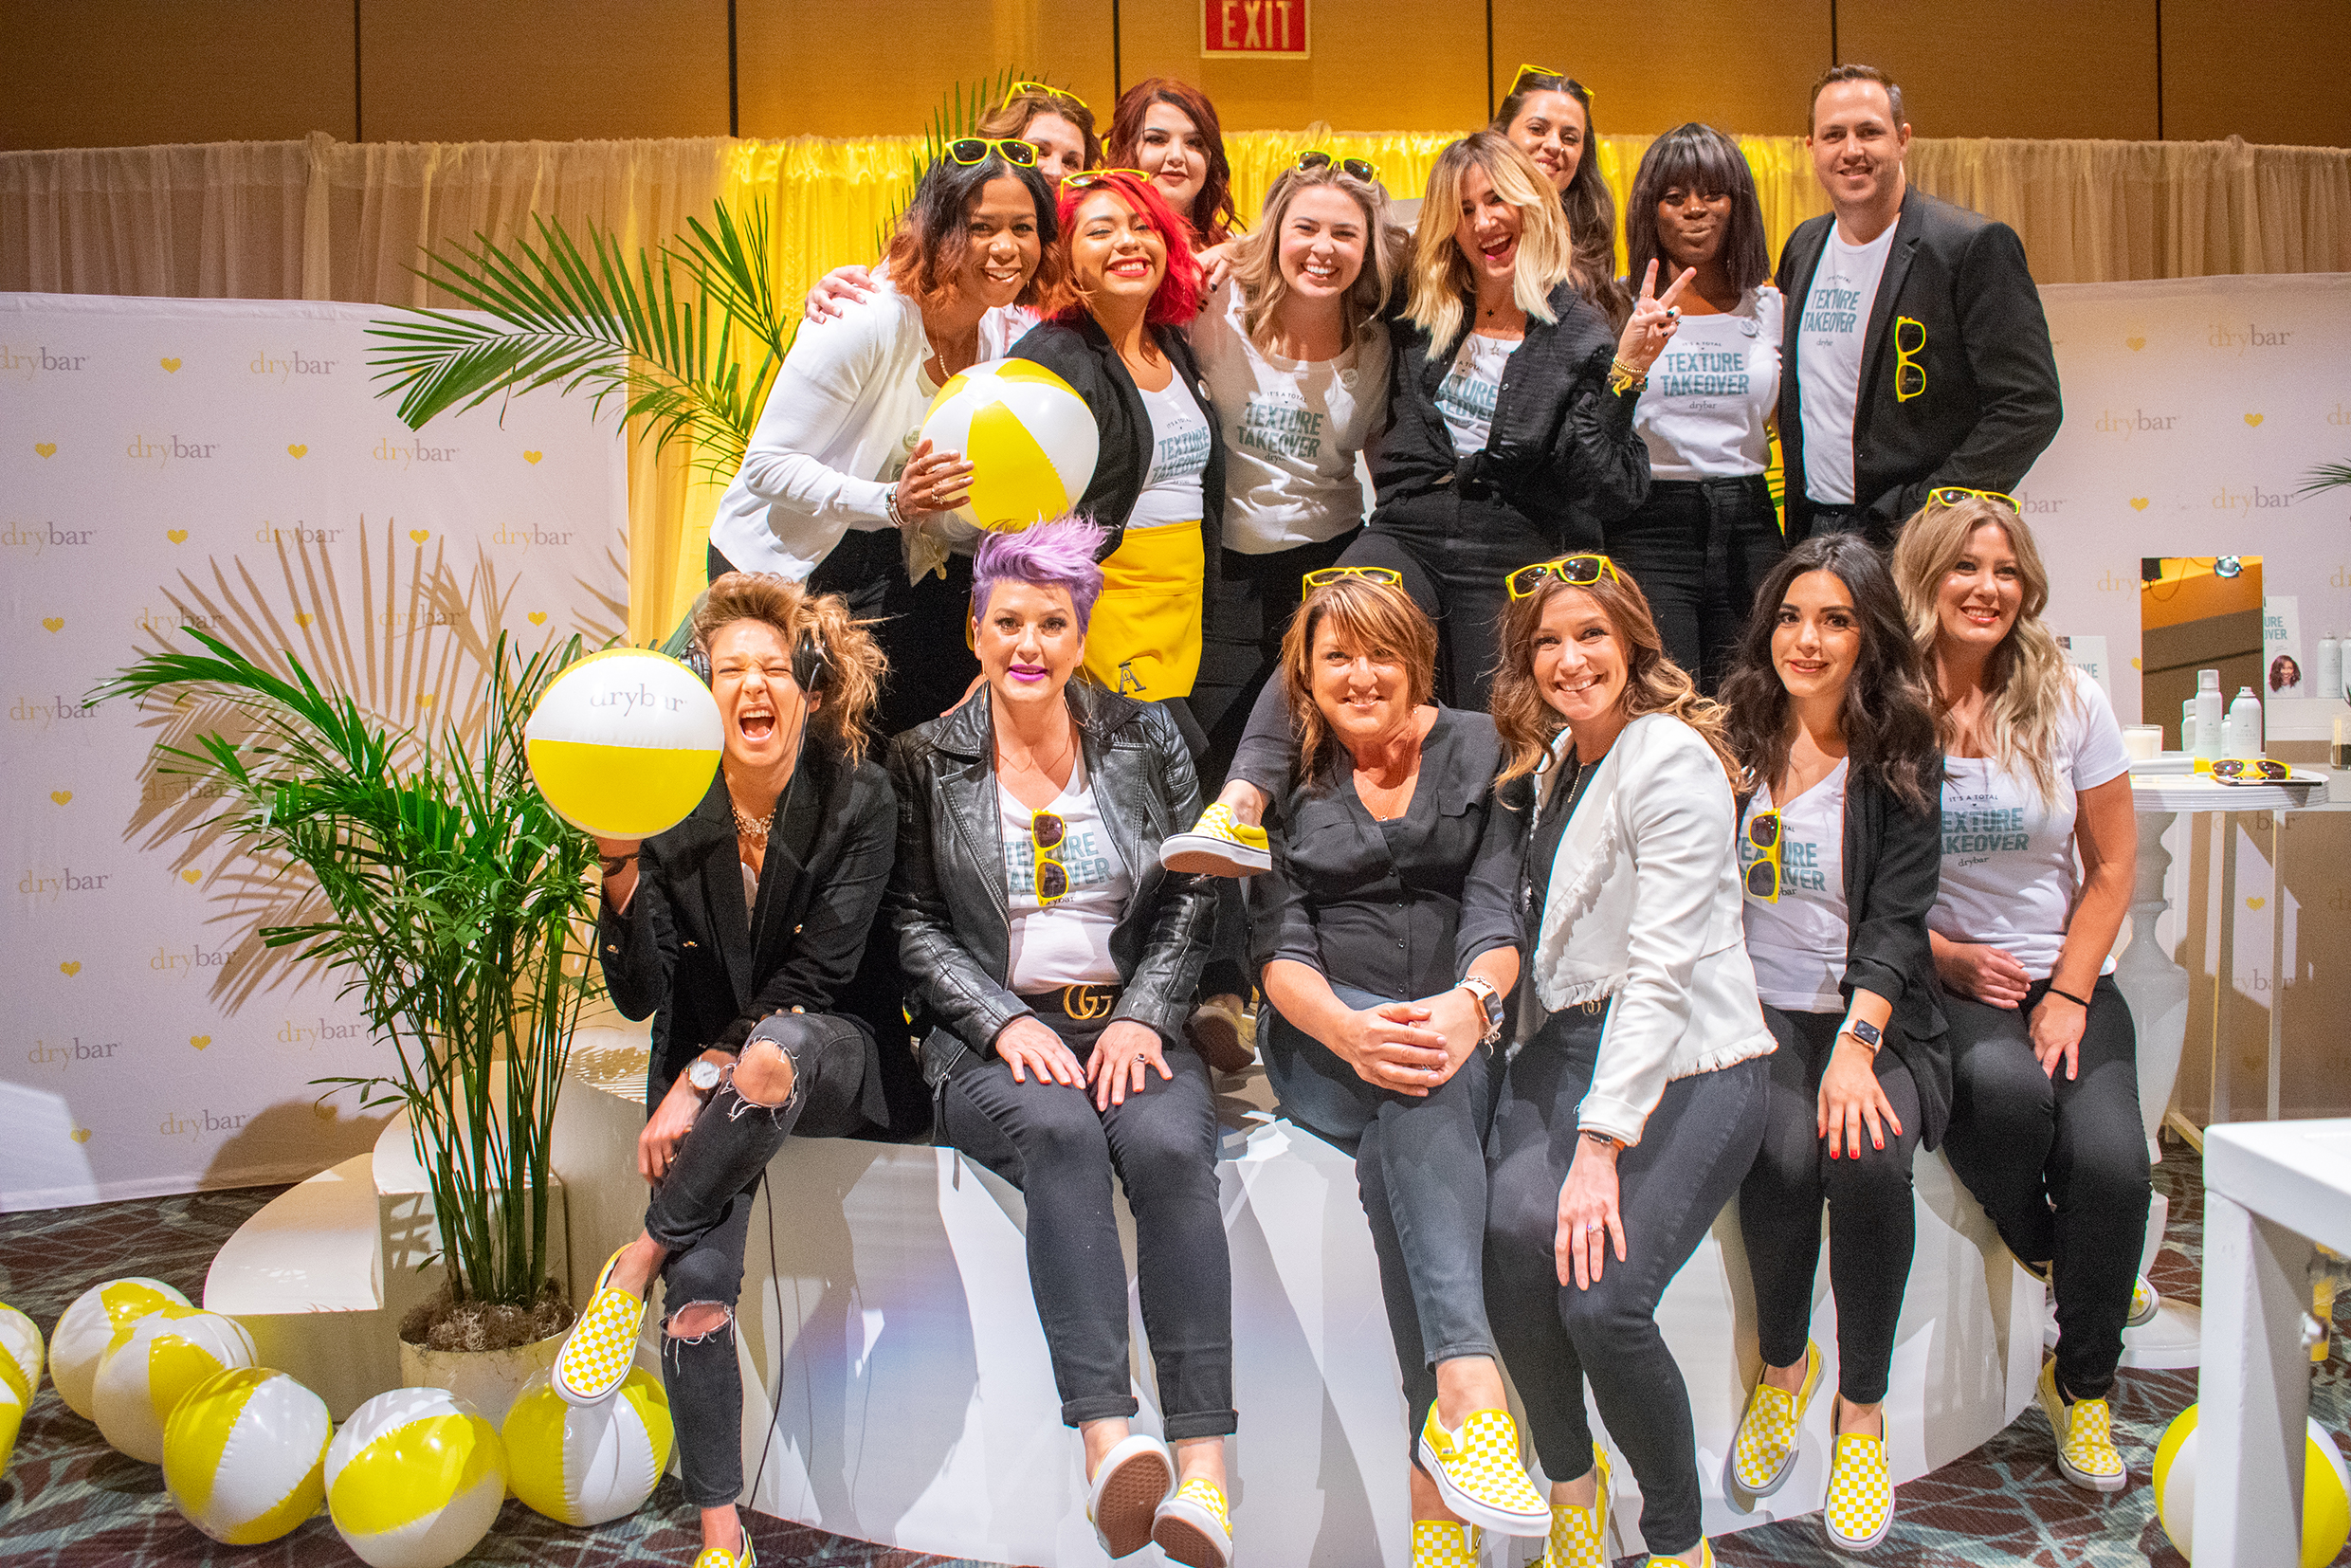 Make Your Life Sweeter Events- DryBar Sephora Convention